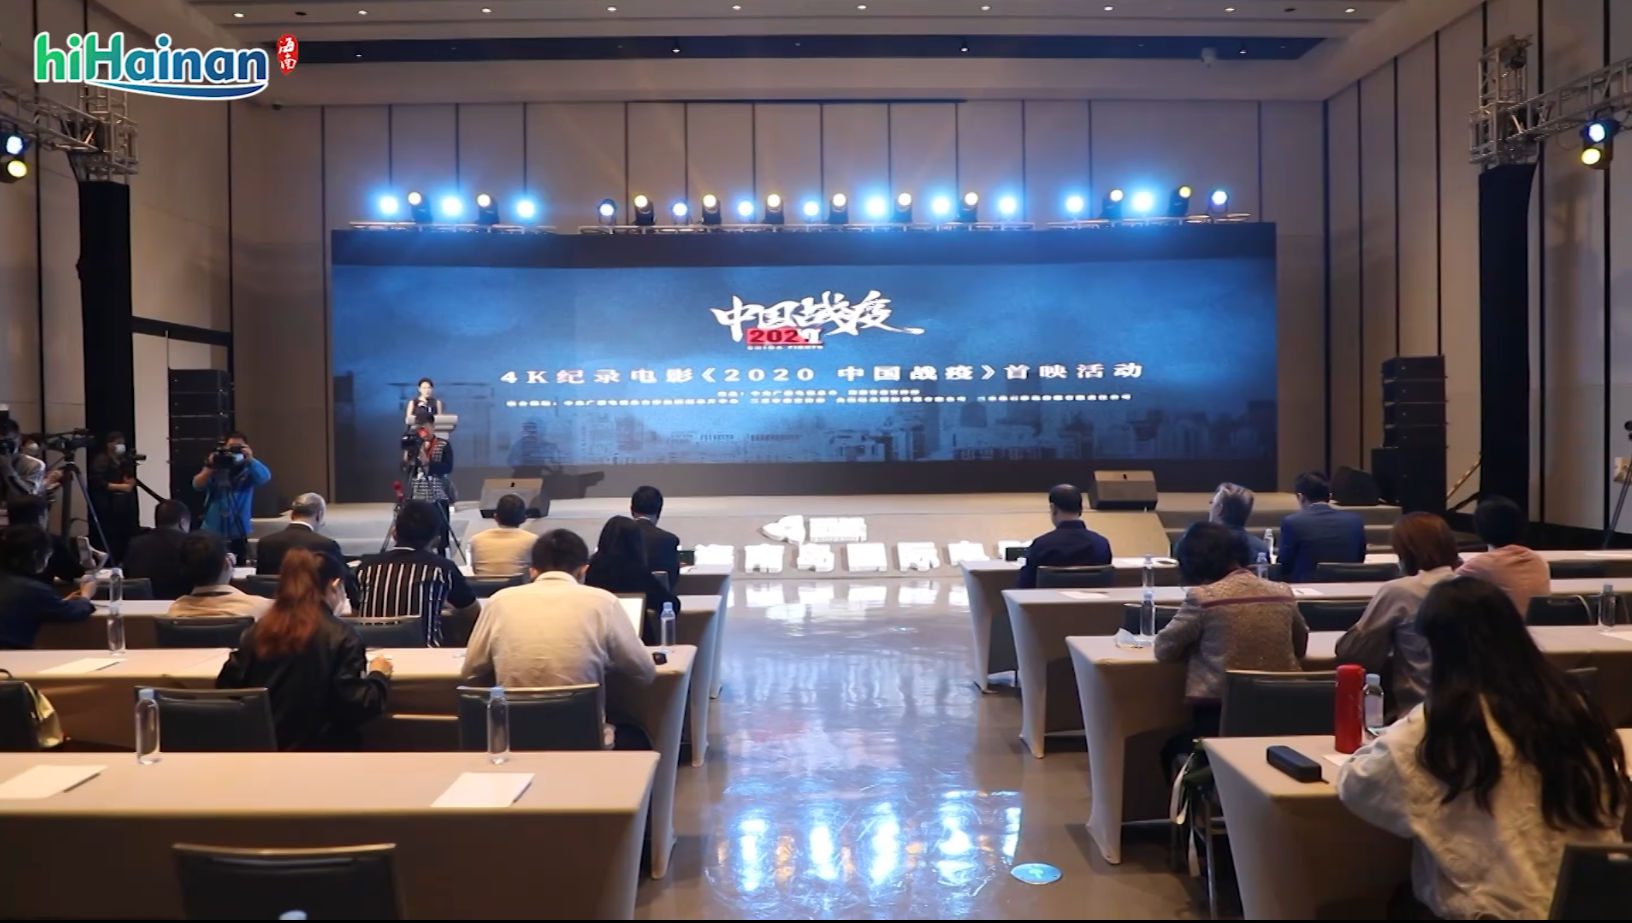 2020 China Fights premiered at the Hainan Island International Film Festival